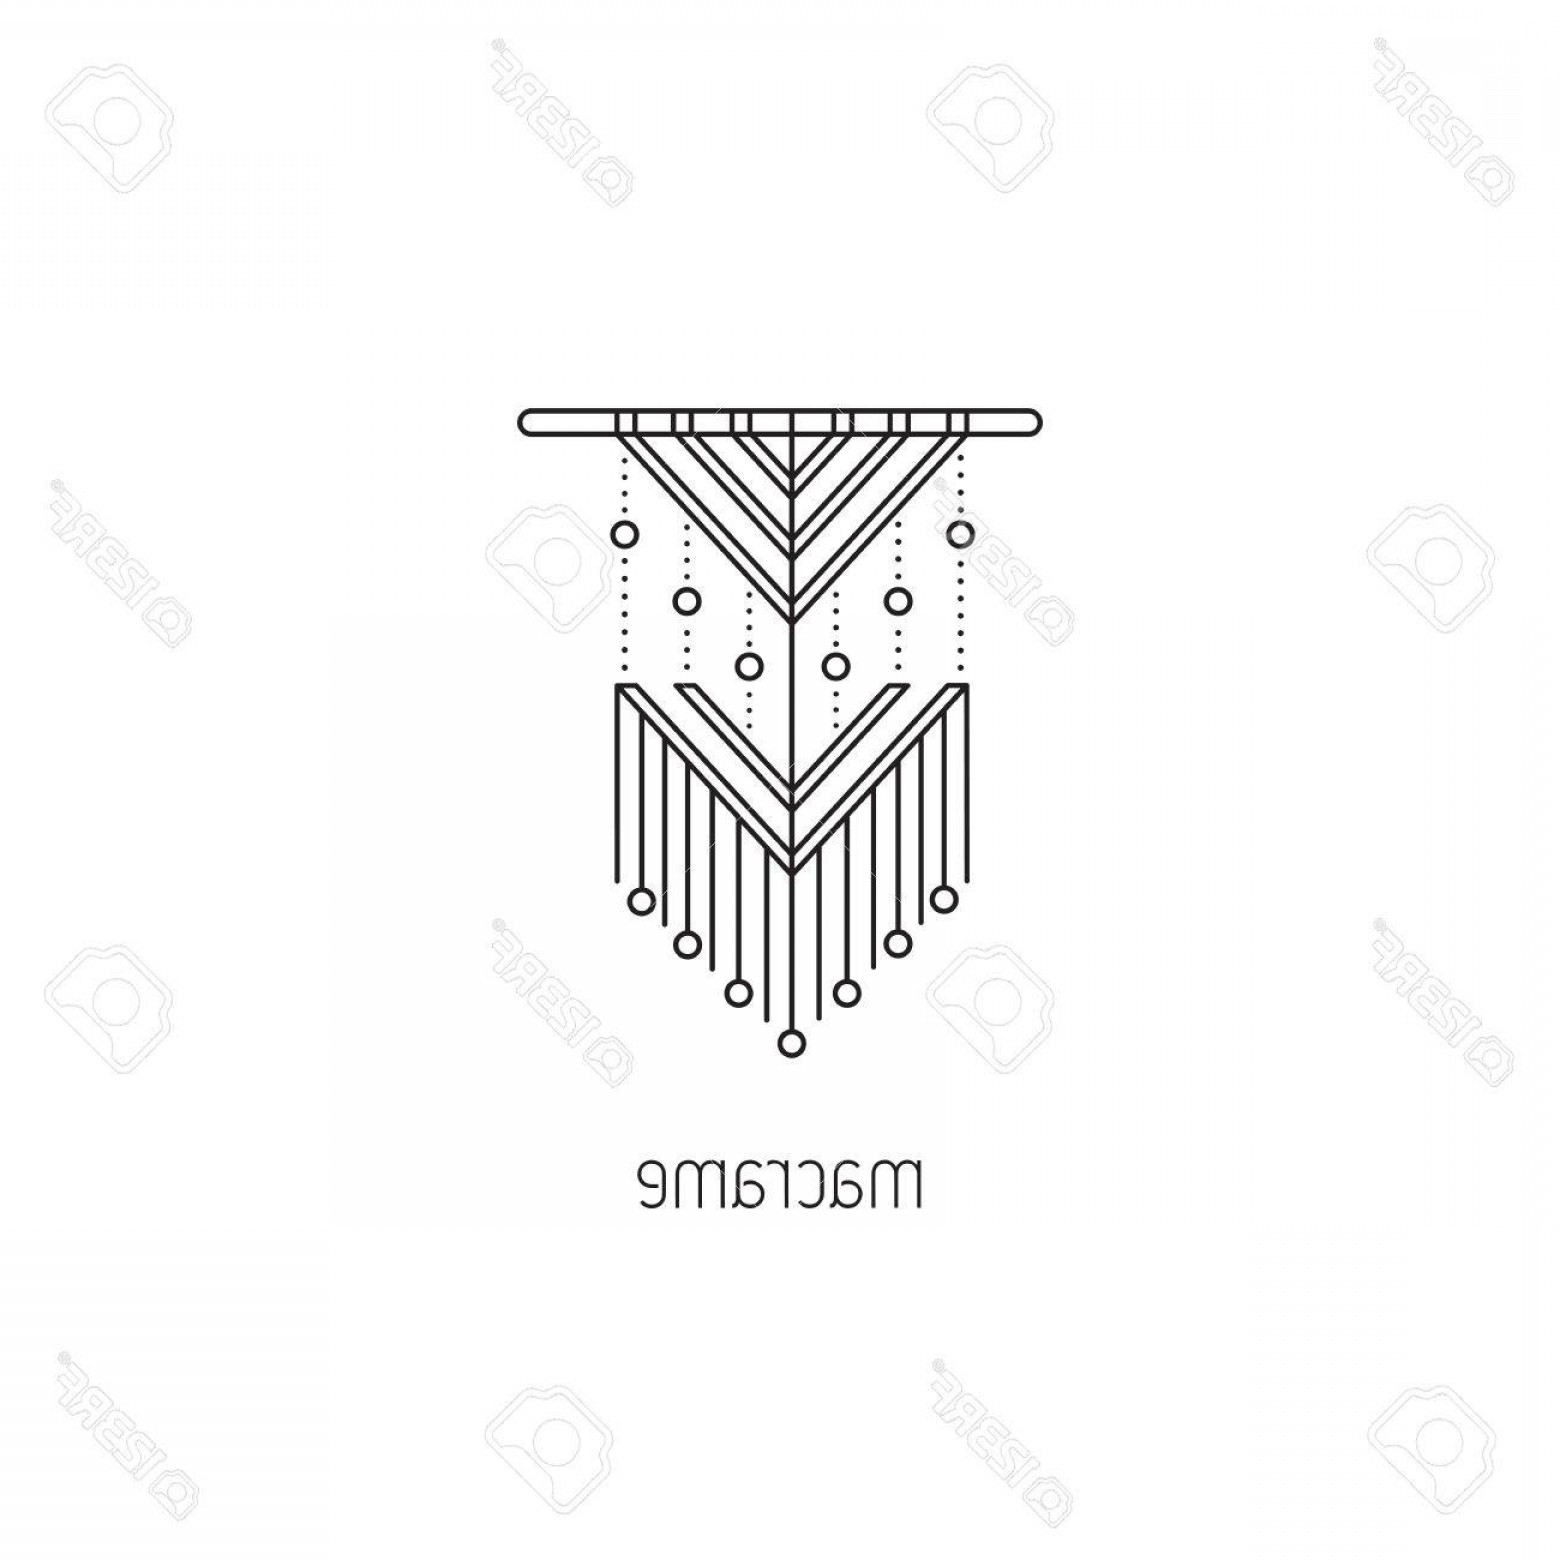 BBB Logo In Vector Form: Photostock Vector Macrame Vector Thin Line Icon A Form Of Textile Making Using Knotting Colored Isolated Symbol Logo T